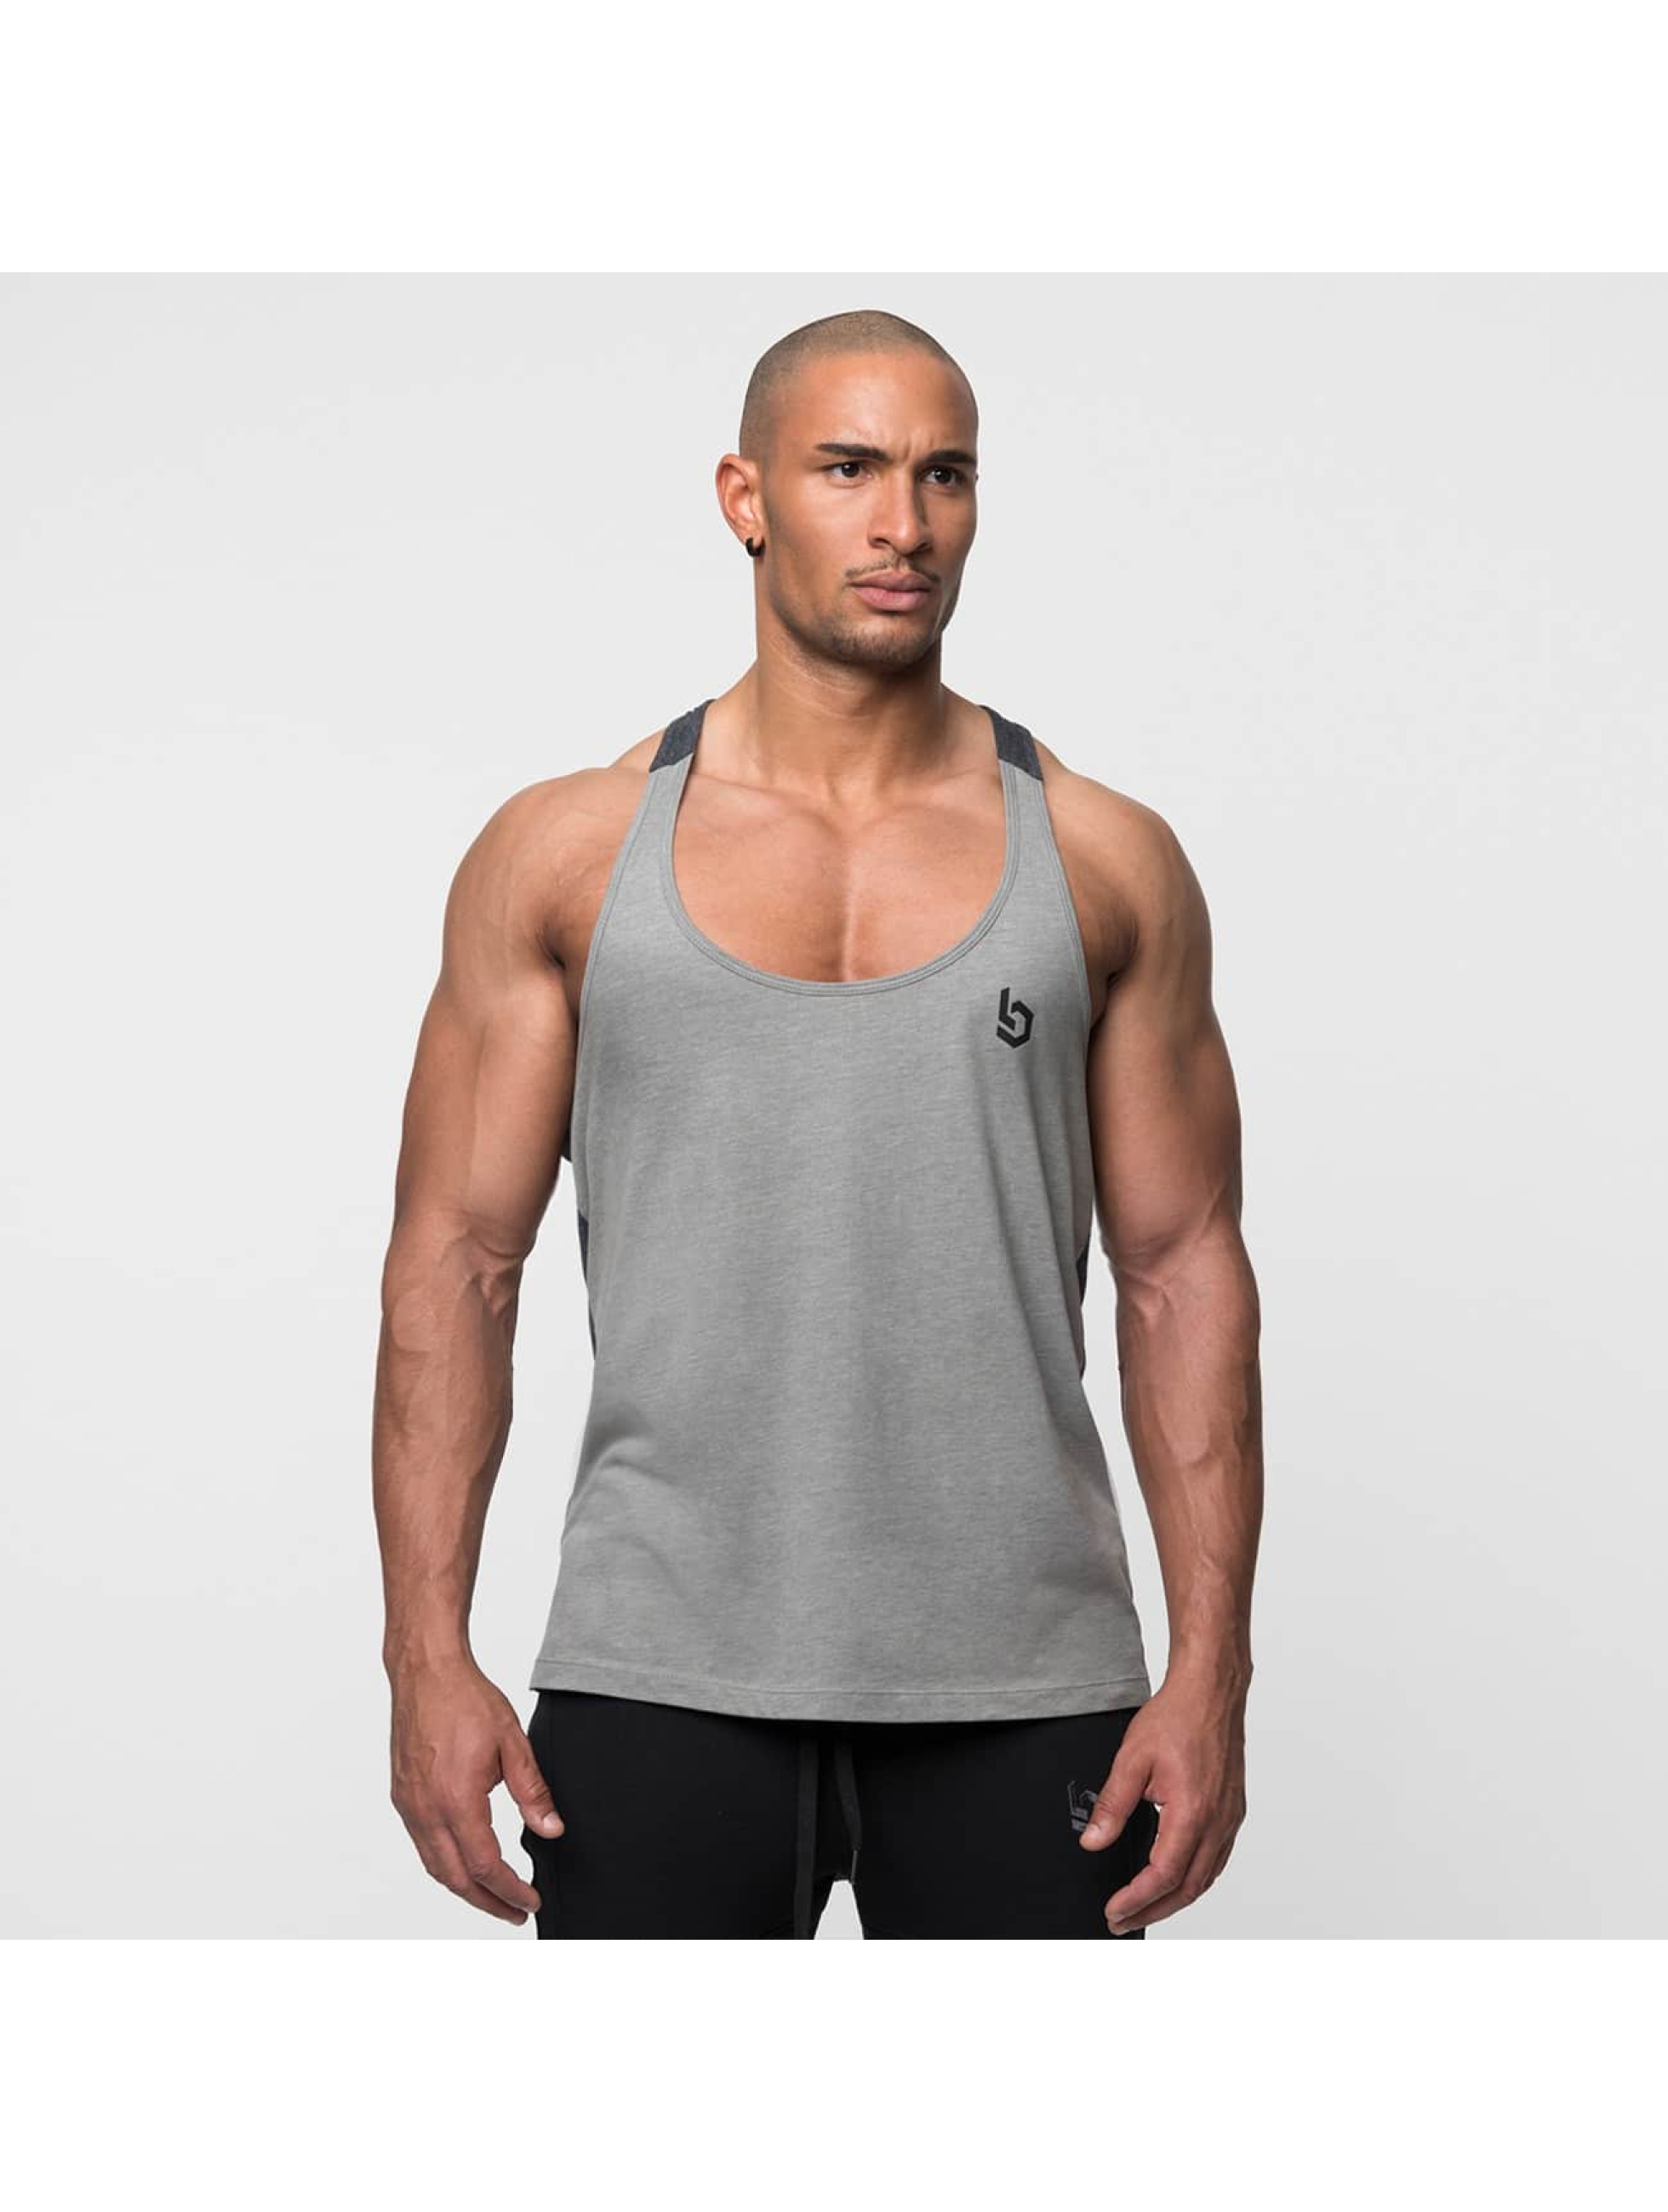 Beyond Limits Tanktop Selected Stringer grijs